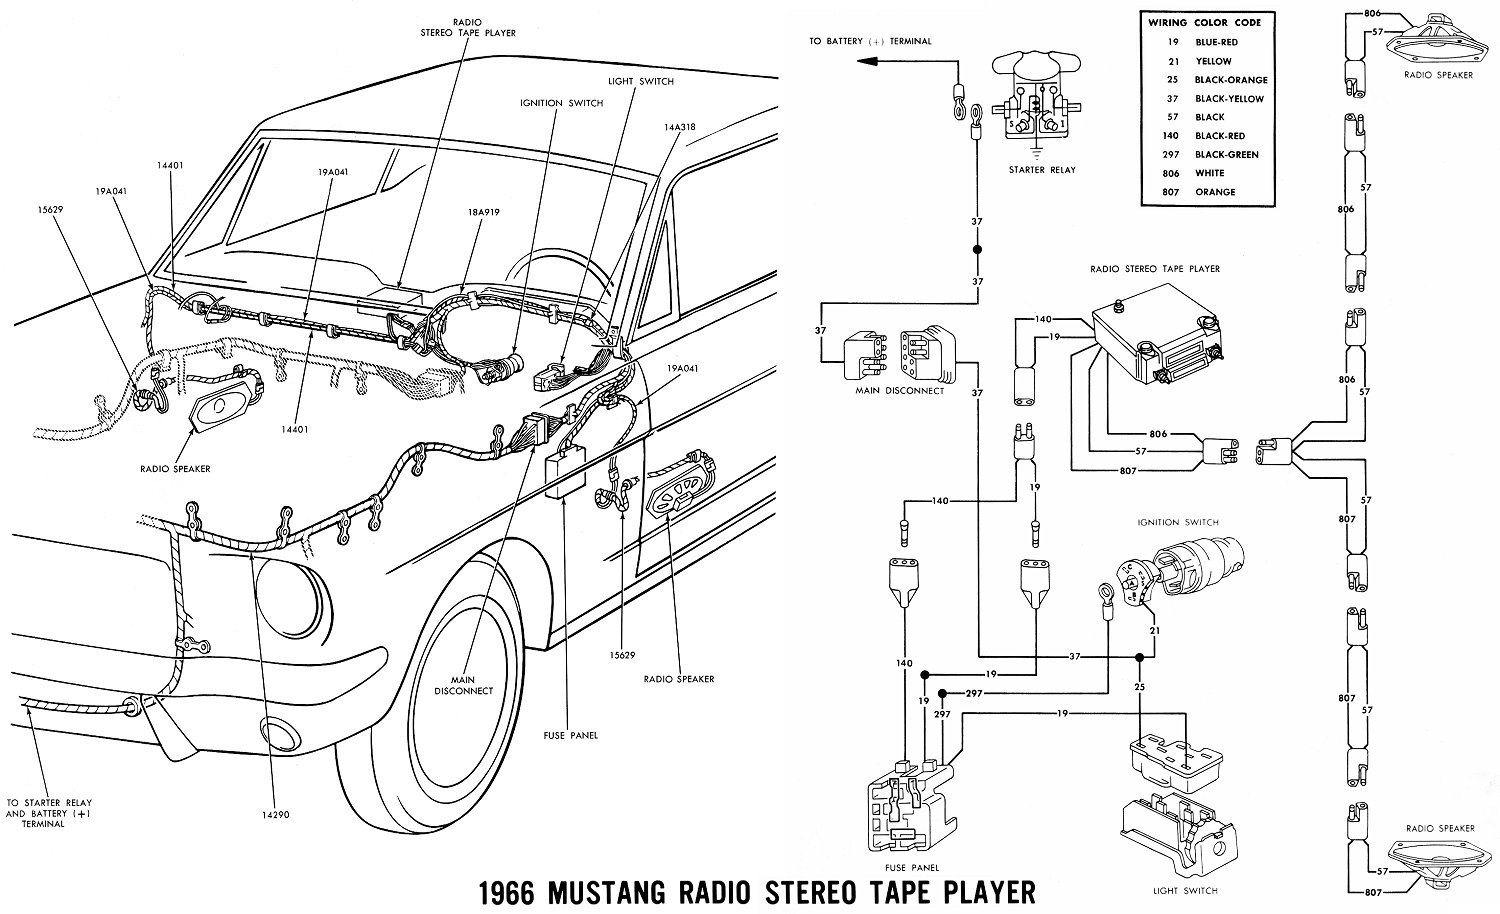 66stereo 66 mustang wiring diagram 1966 mustang dash wiring diagram 66 mustang ignition wiring diagram at soozxer.org